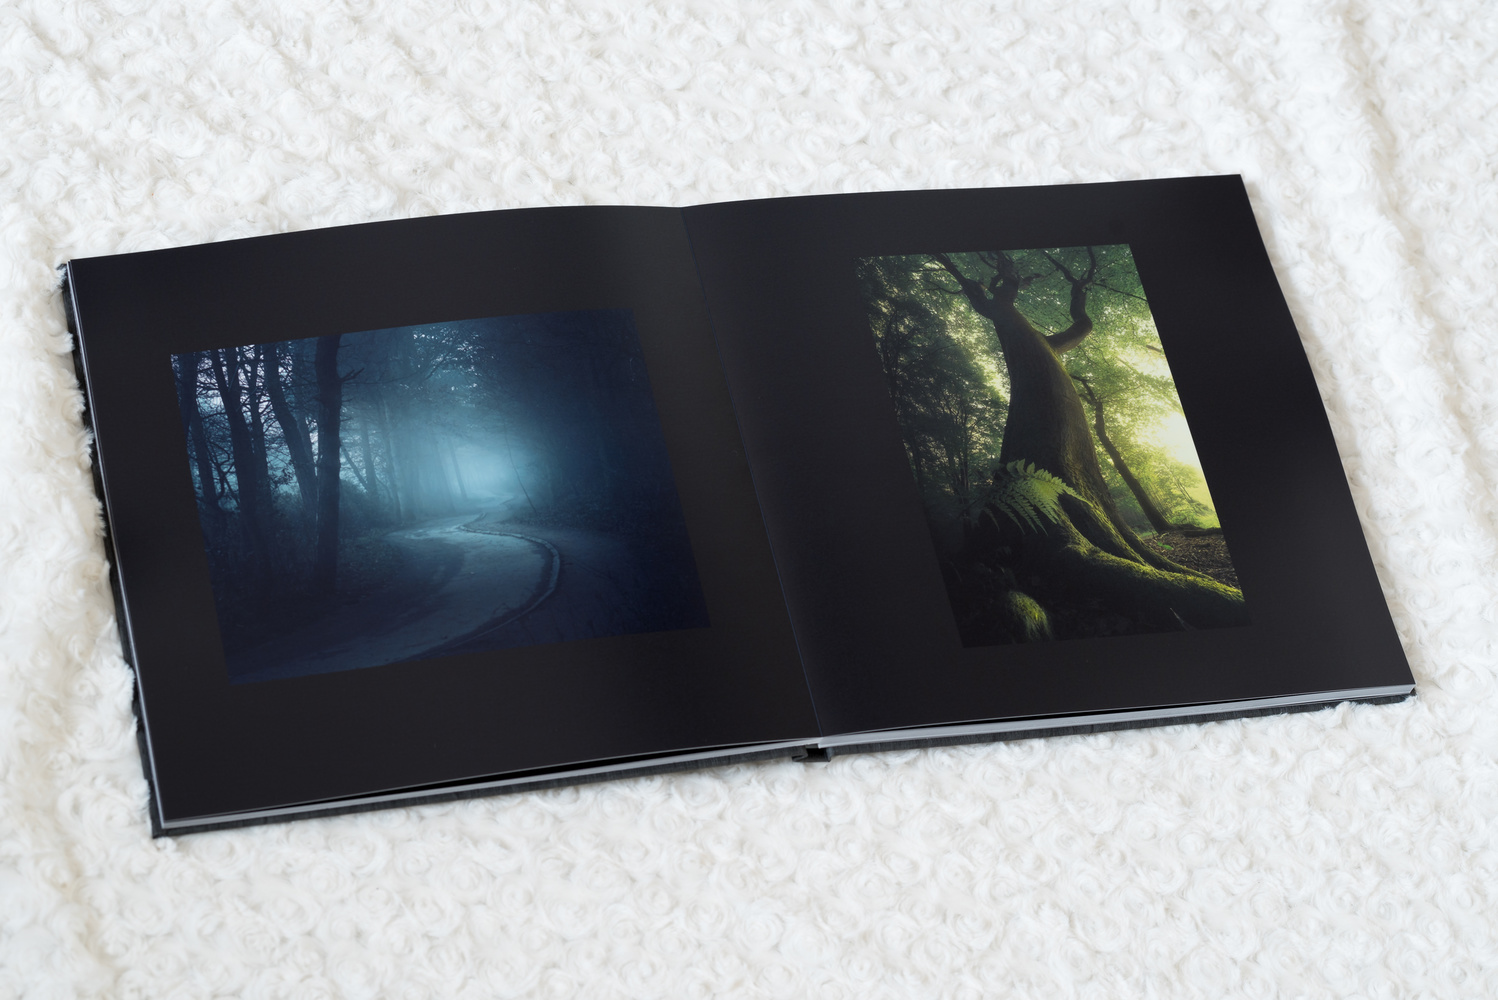 Review: The Saal Digital High-End Photobook for Professional